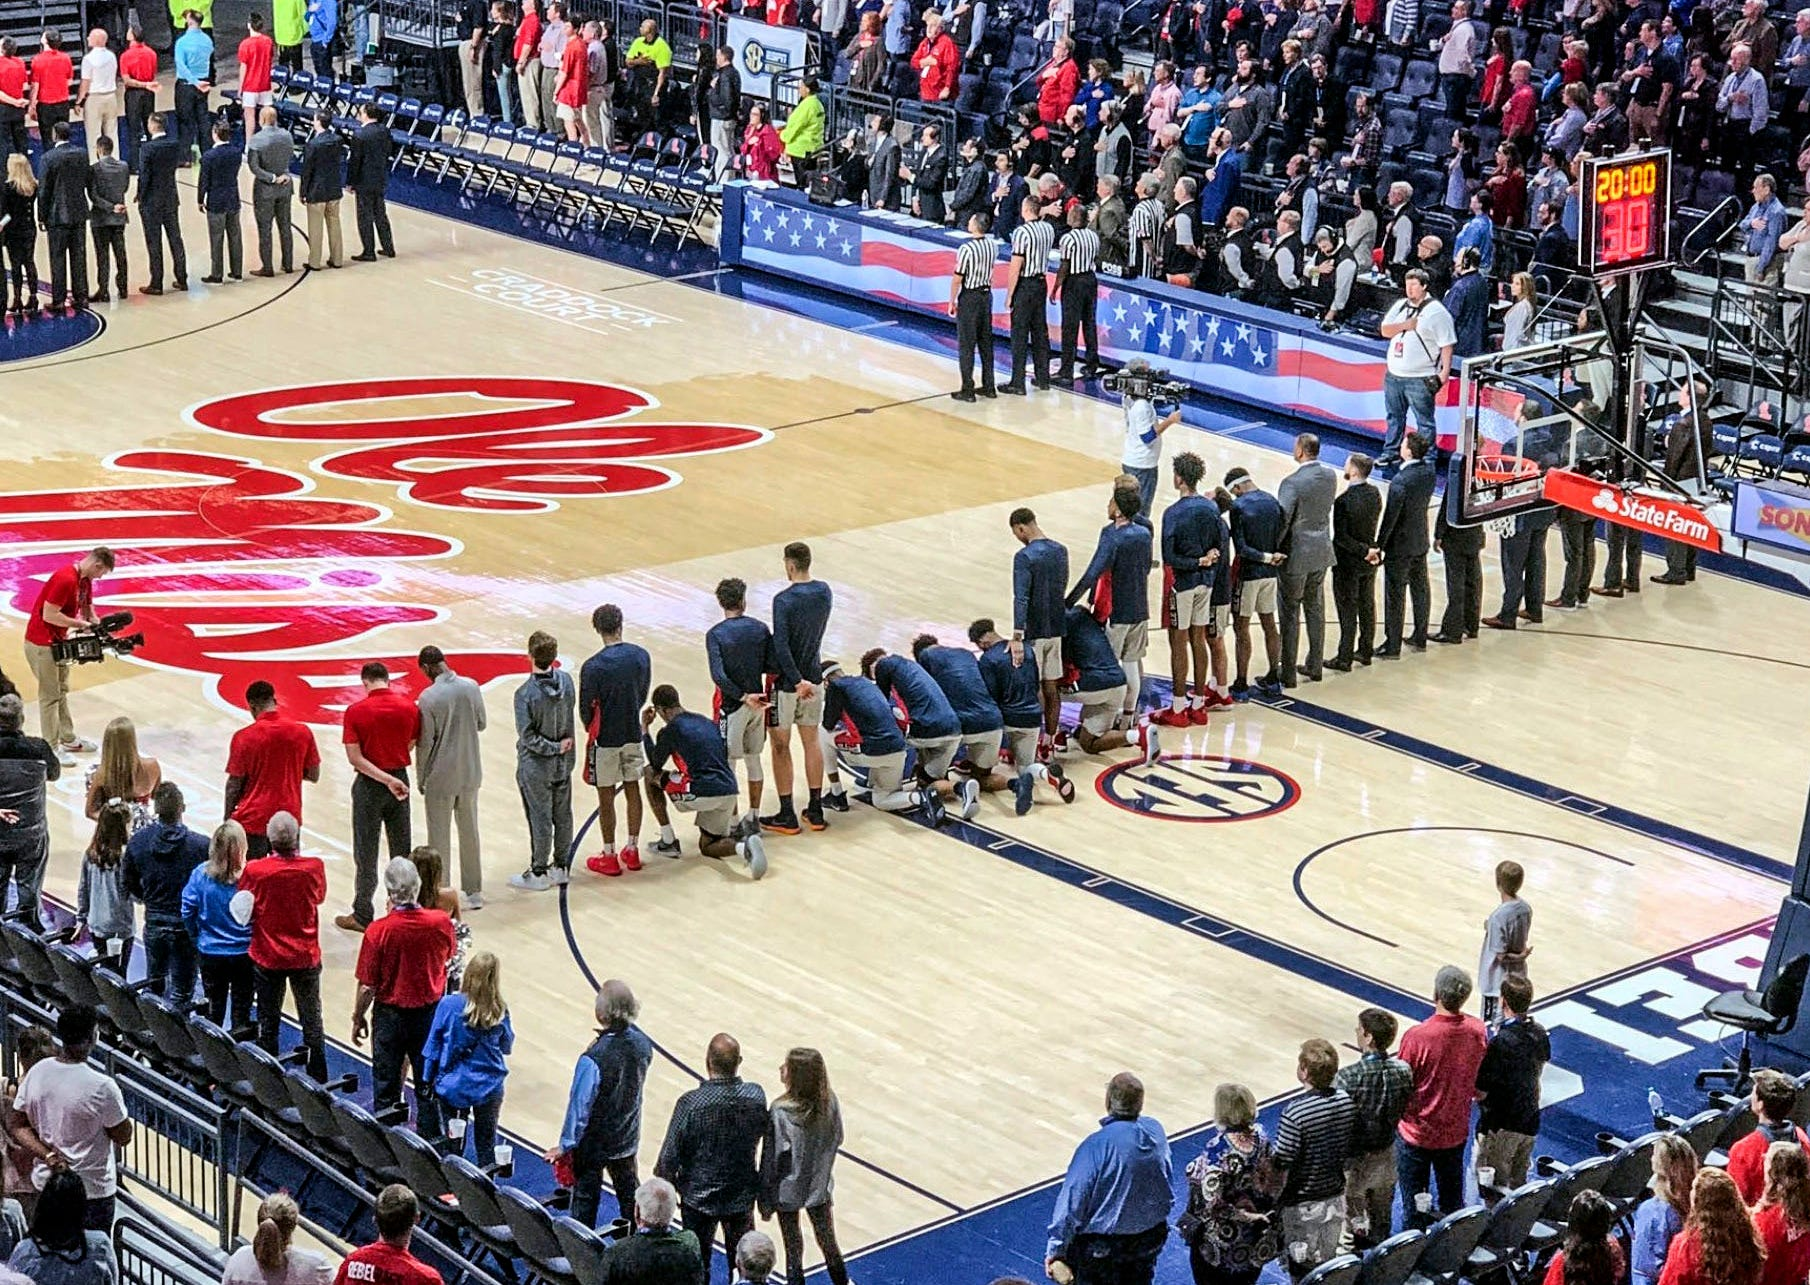 Twitter erupts after Ole Miss basketball players kneel during National Anthem | Clarion Ledger